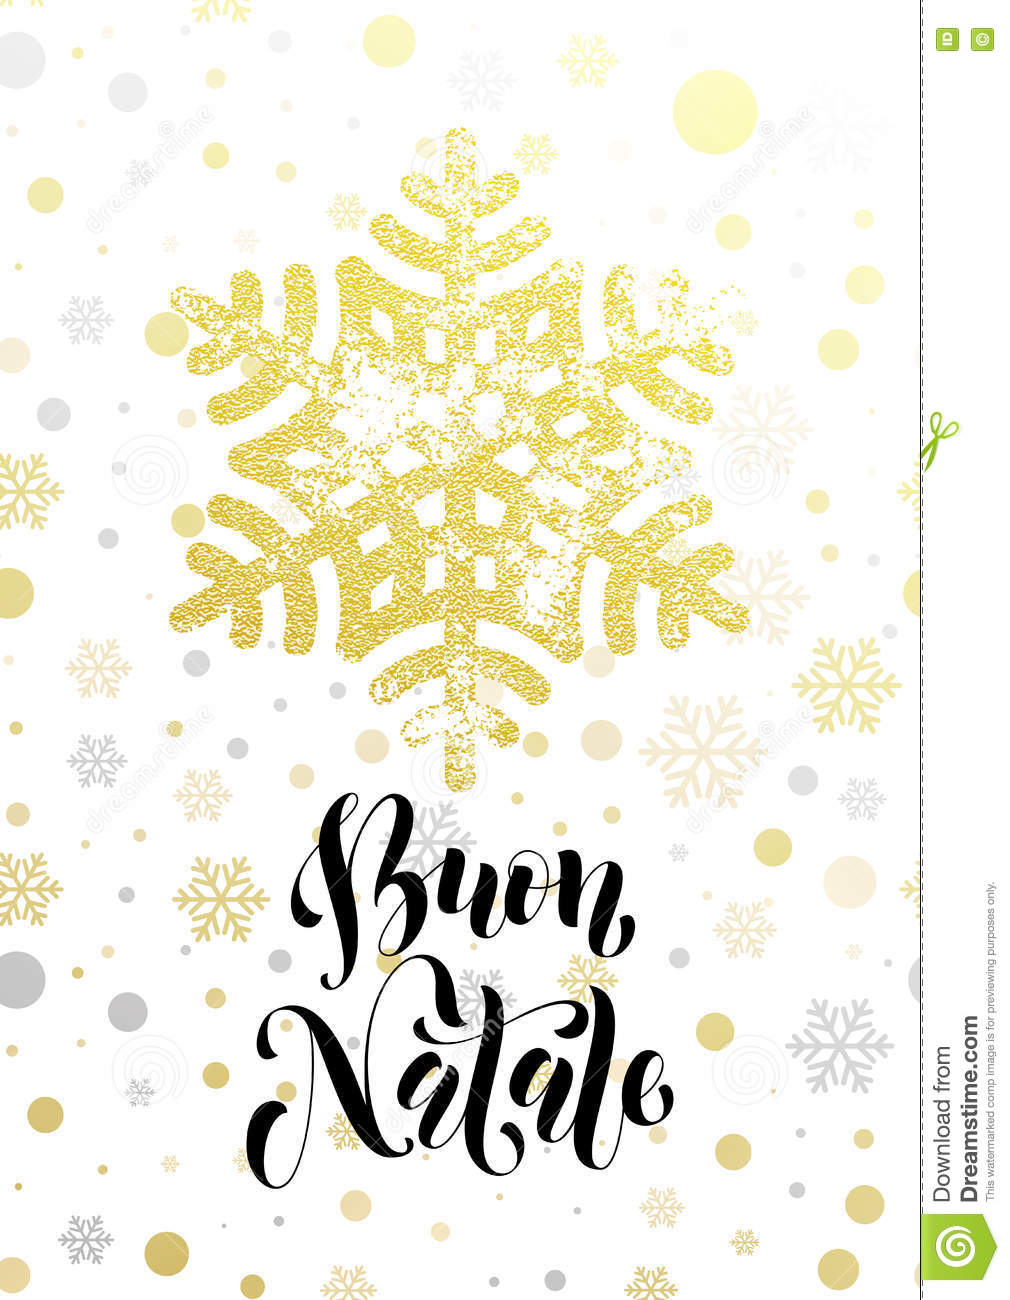 Buon Natale Glitter.Merry Christmas Italian Buon Natale Greeting Card Golden Glitter Snowflake Stock Vector Illustration Of Lettering Golden 82391161